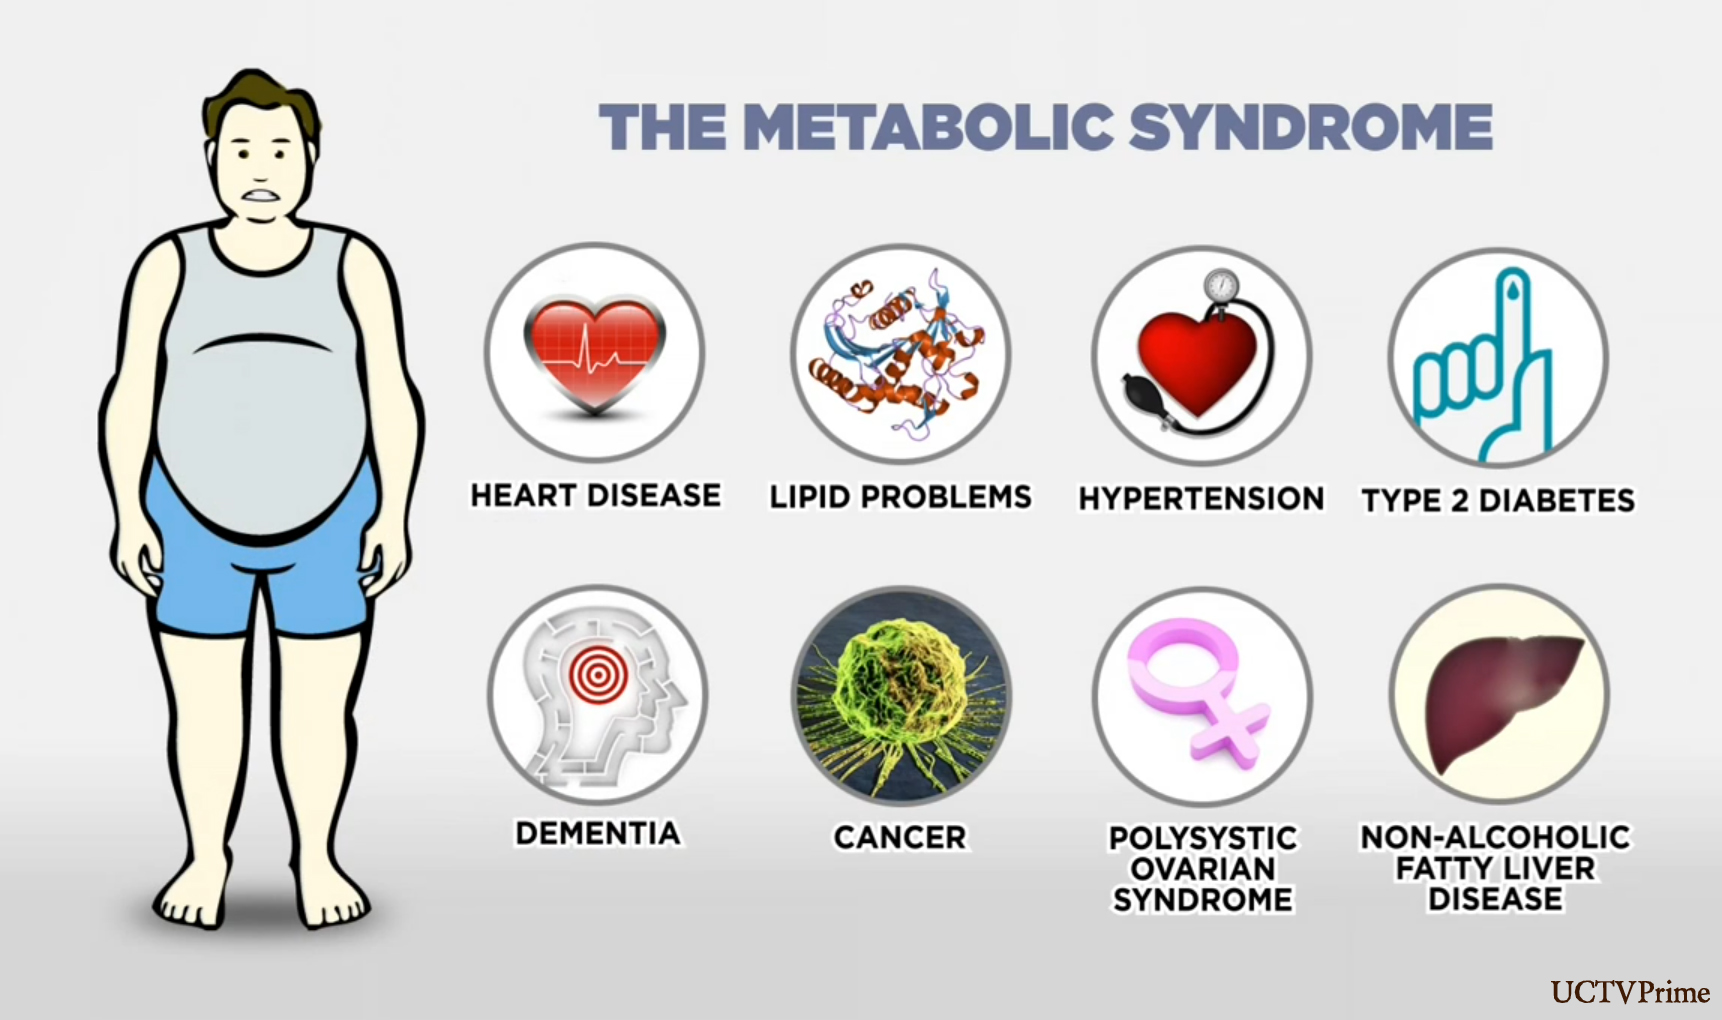 What is metabolic syndrome and how is it linked to heart disease?